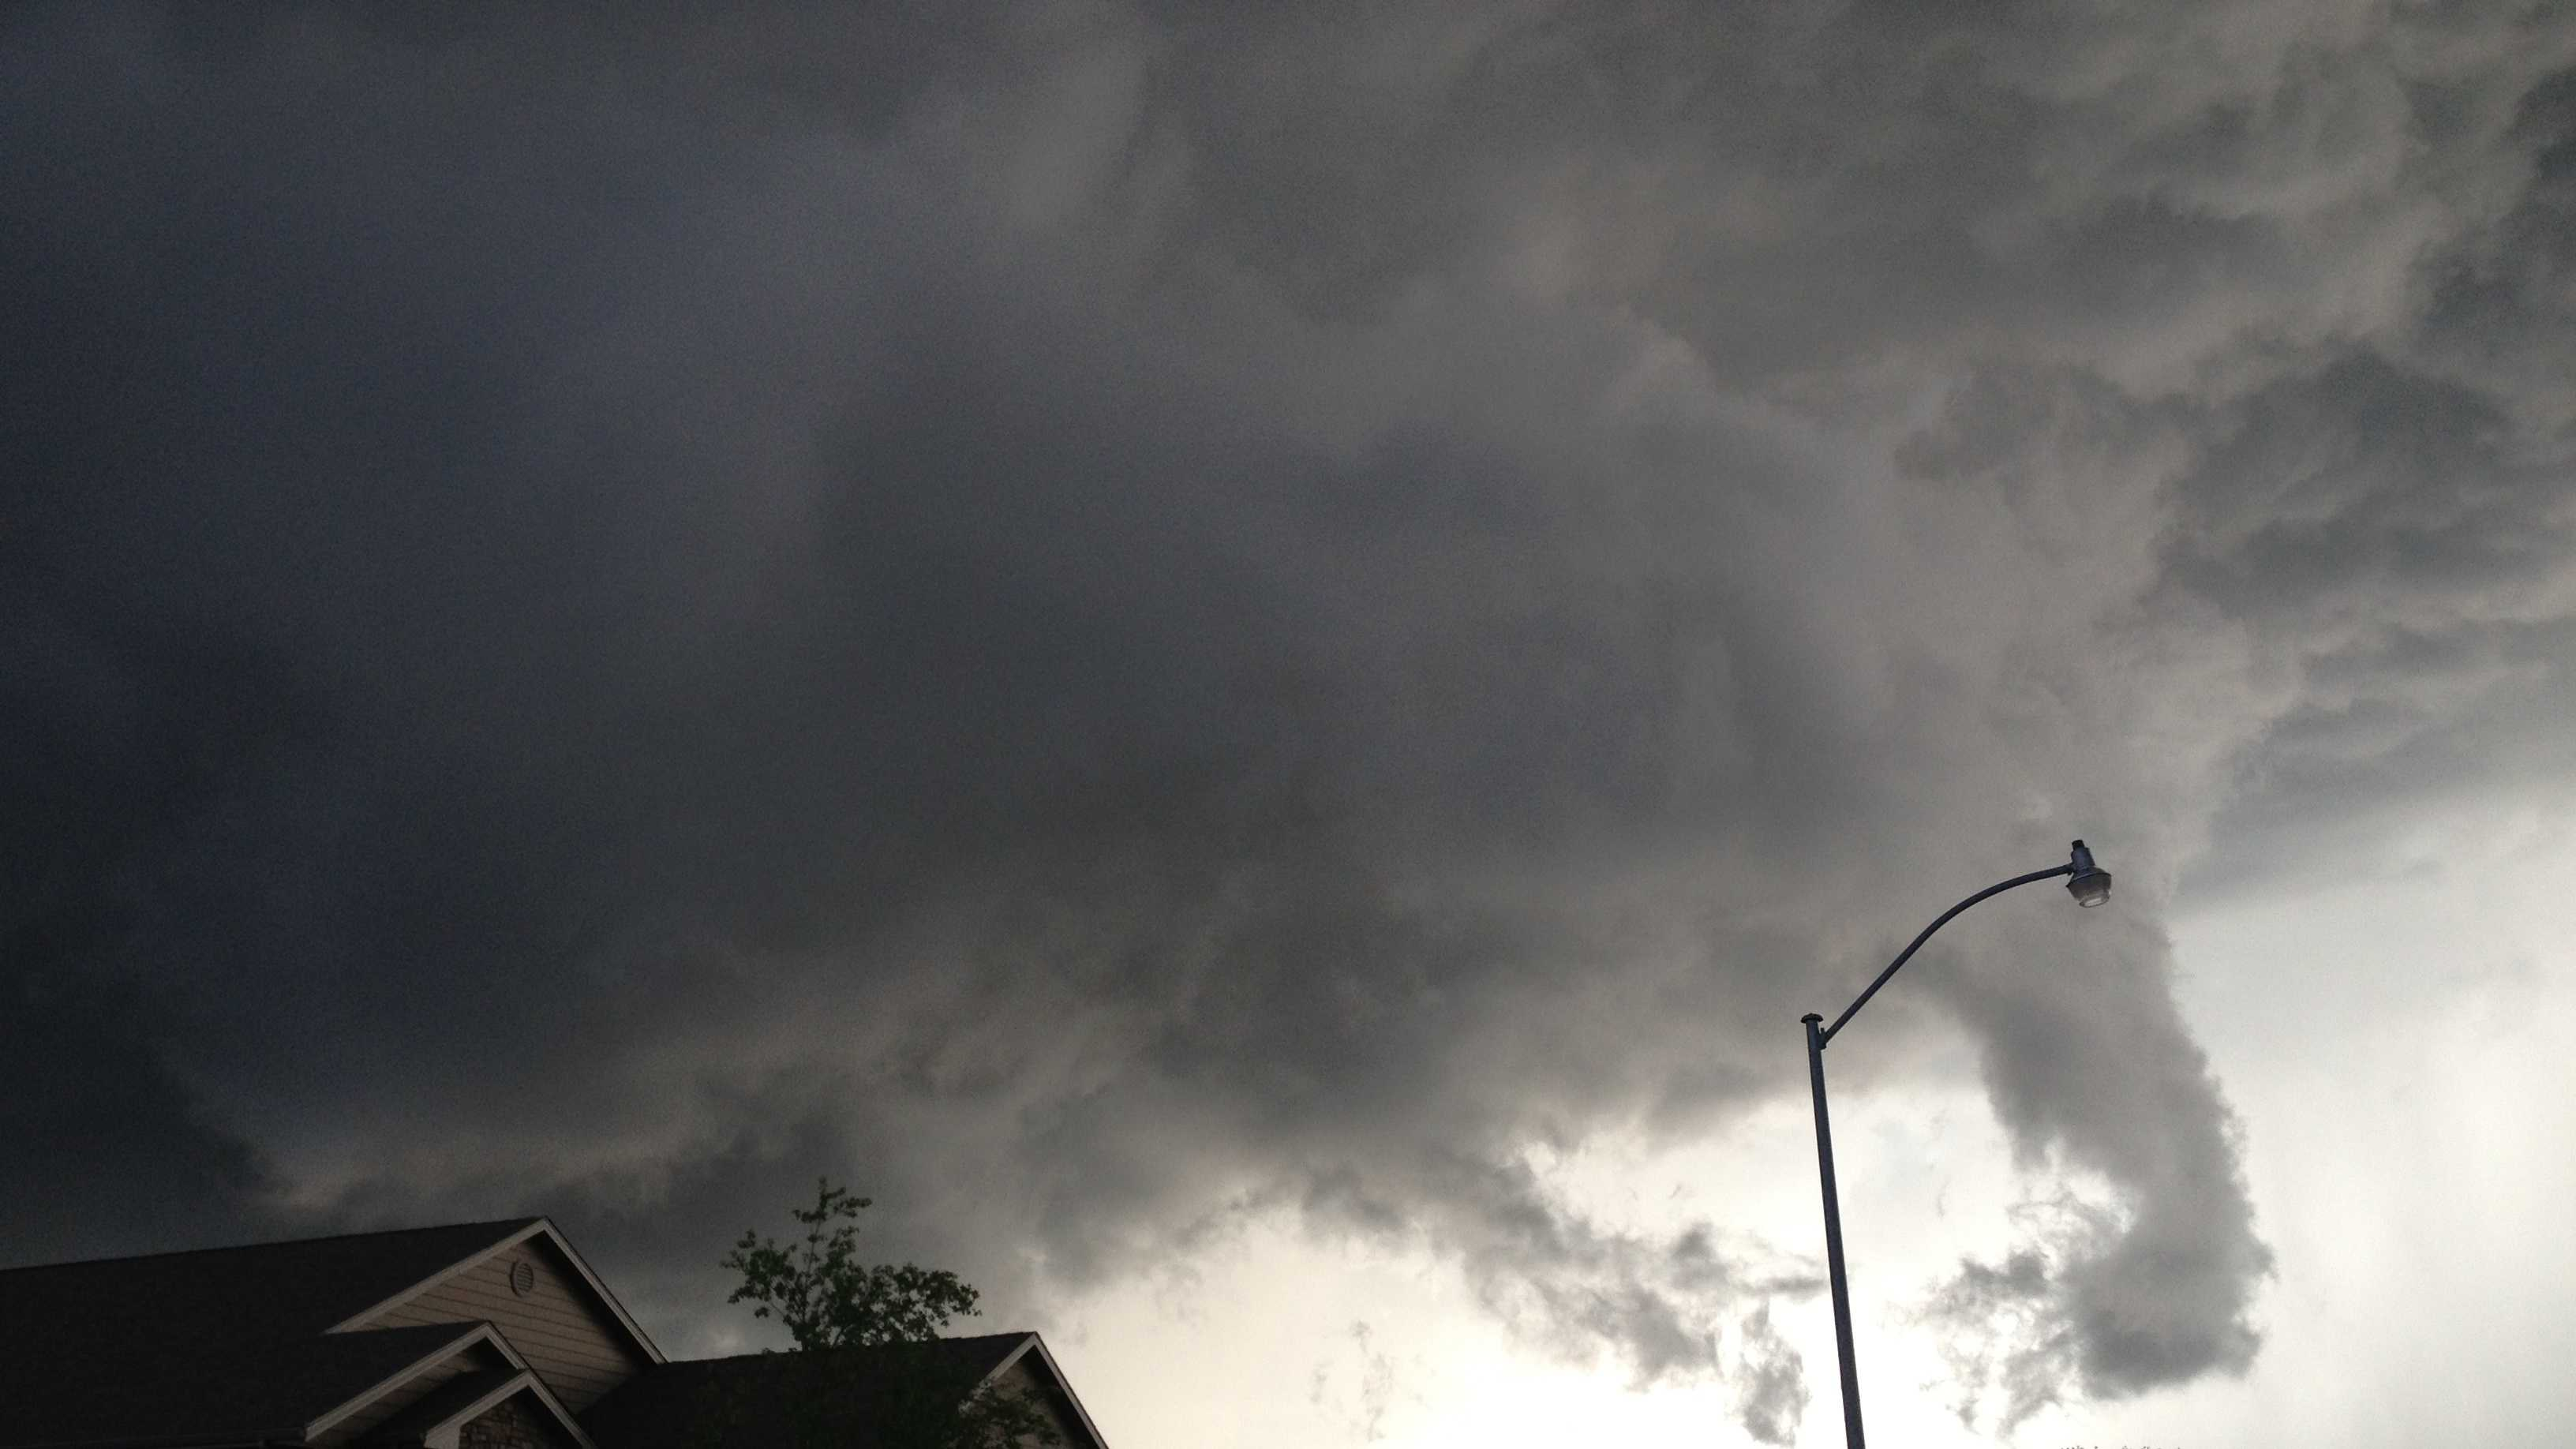 Funnel cloud photographed by Kory Holm near Ankeny.